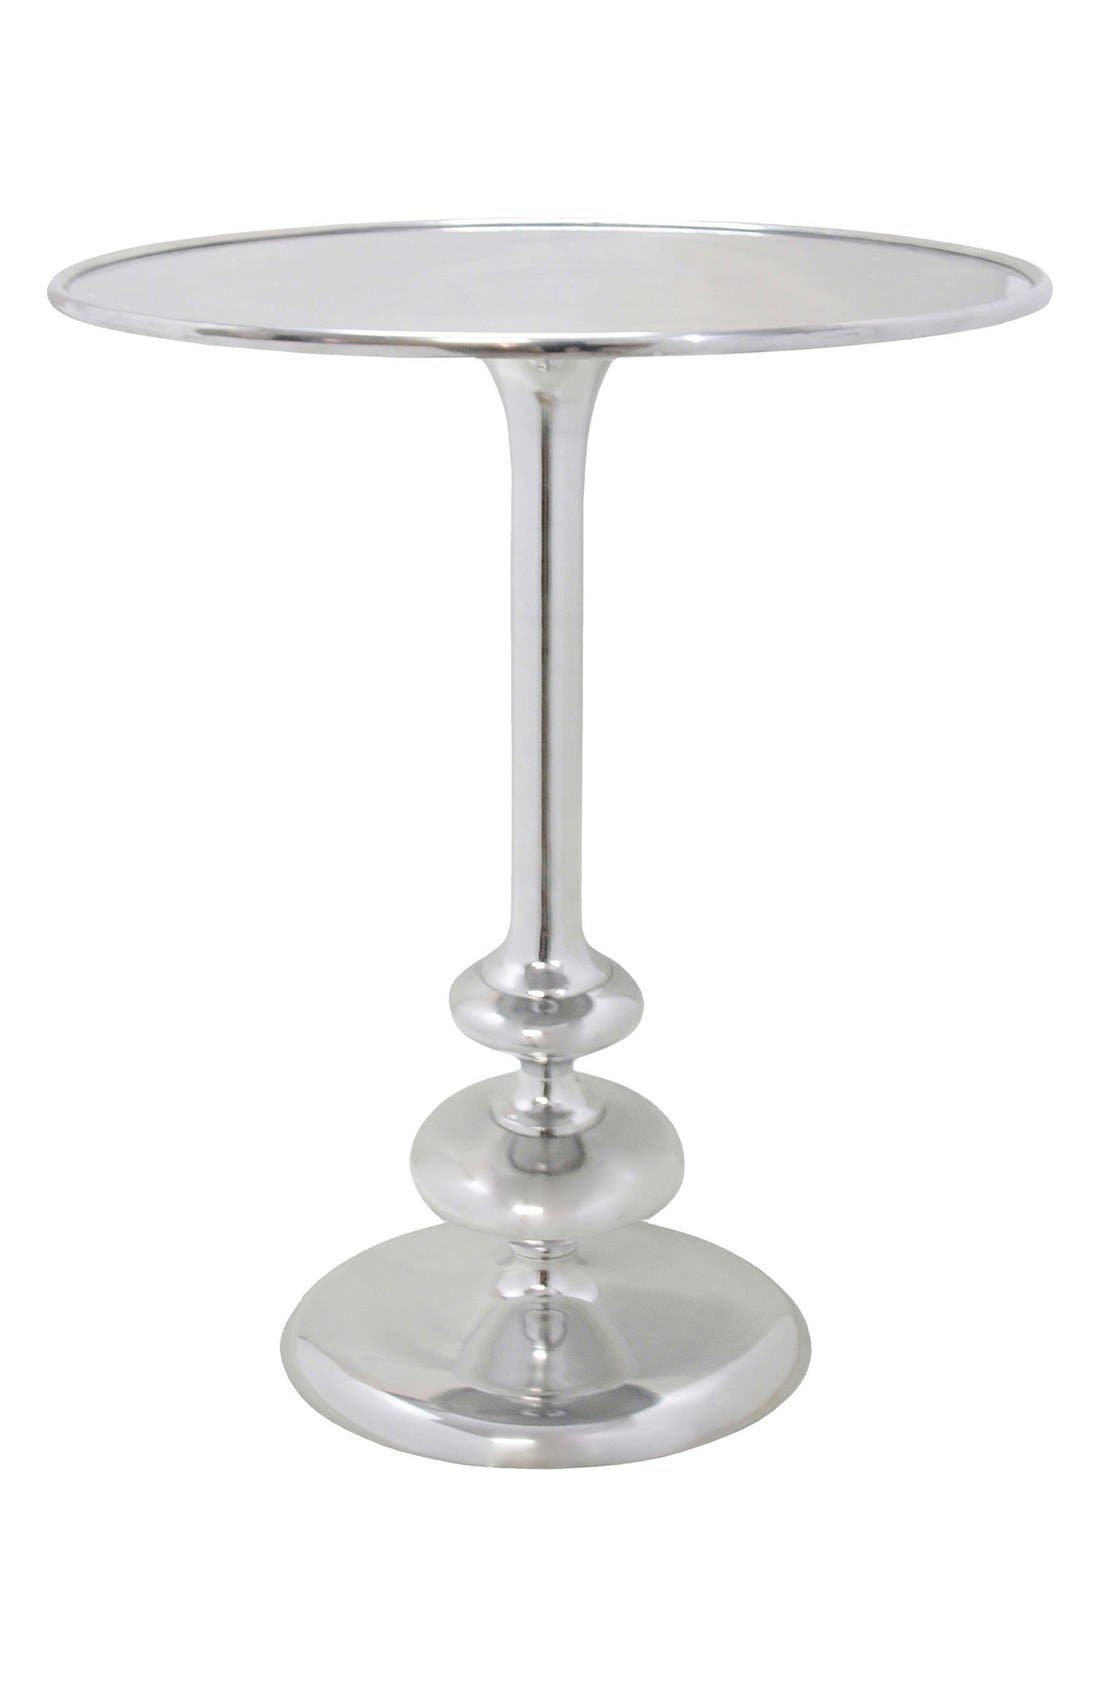 Main Image - Renwil 'Carraway' Accent Table